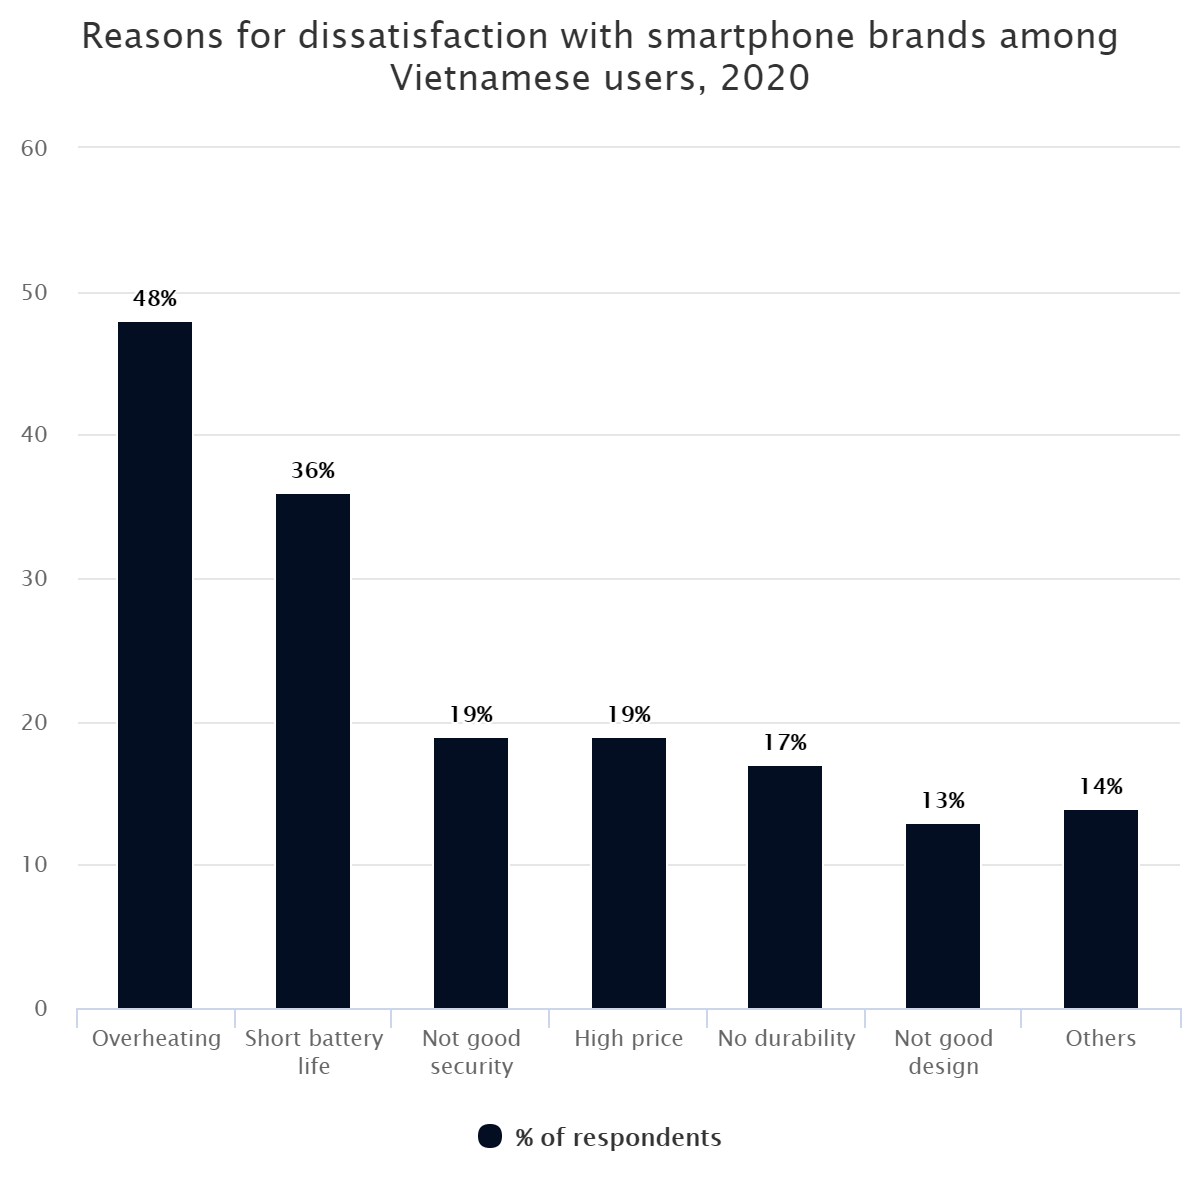 Reasons for dissatisfaction with smartphone brands among Vietnamese users, 2020